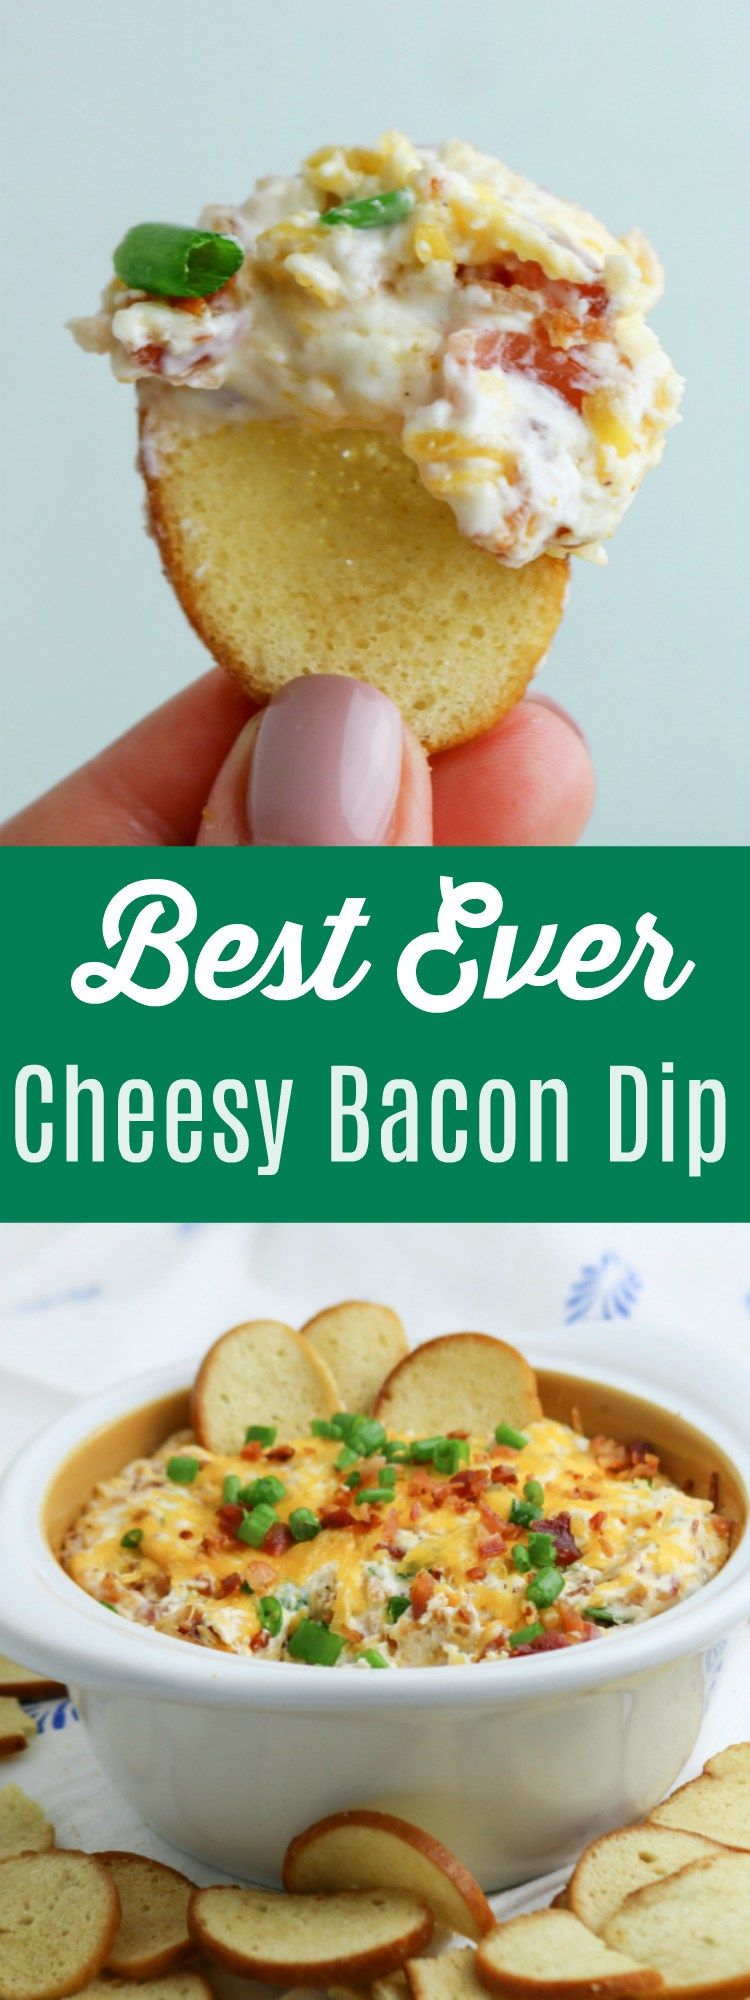 Cheesy Bacon Dip Appetizer - Blue Cheese Bungalow